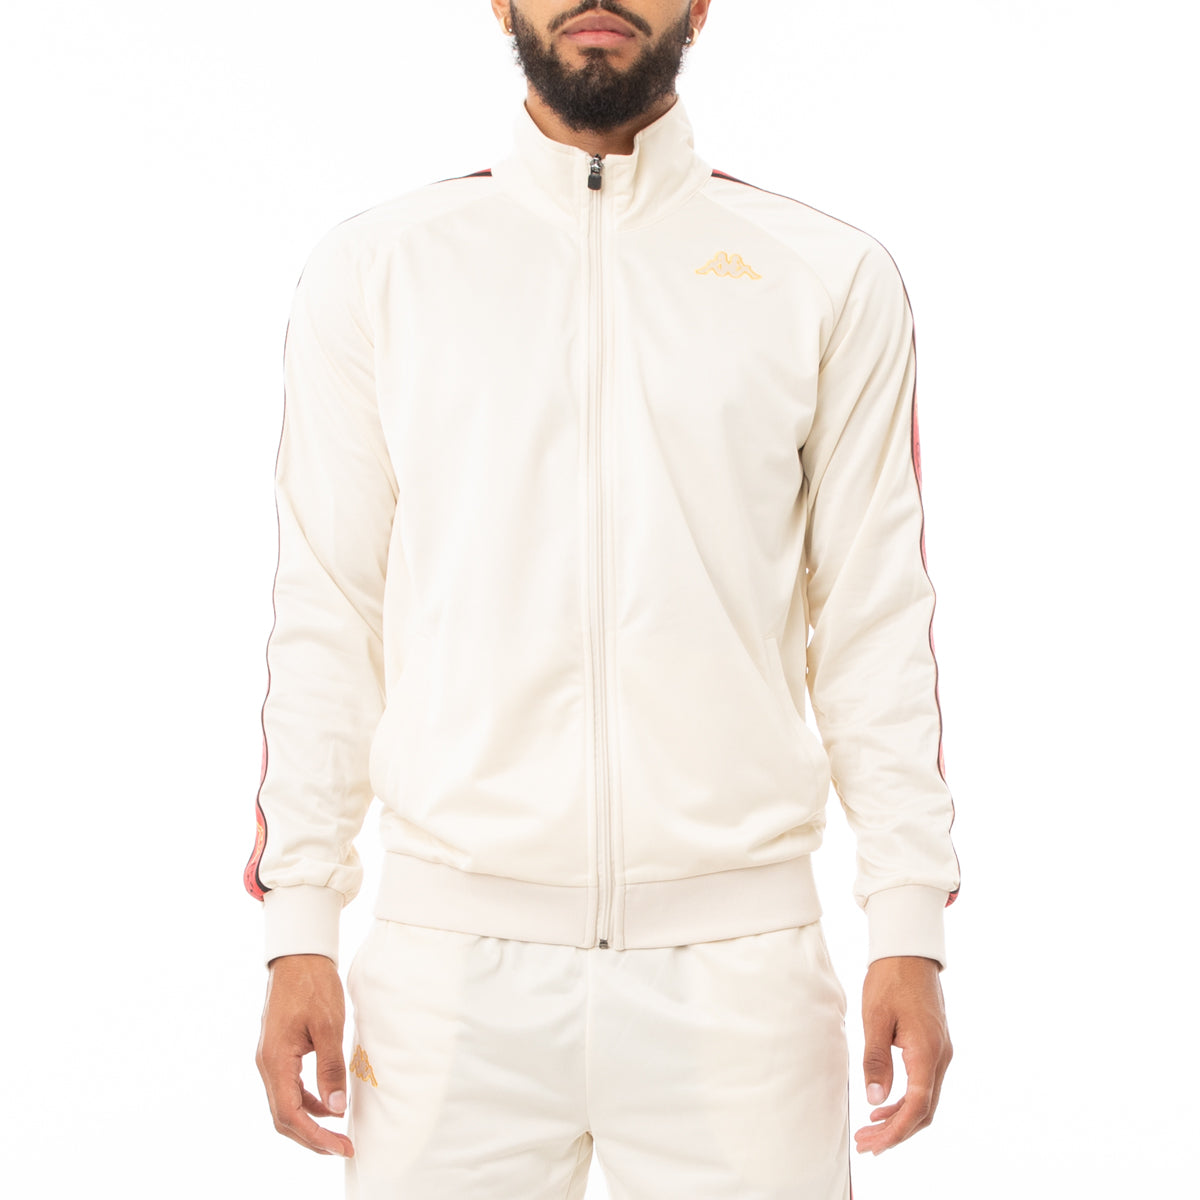 Kappa Logo Tape Artem 2 Track Jacket - Pink Red Gold